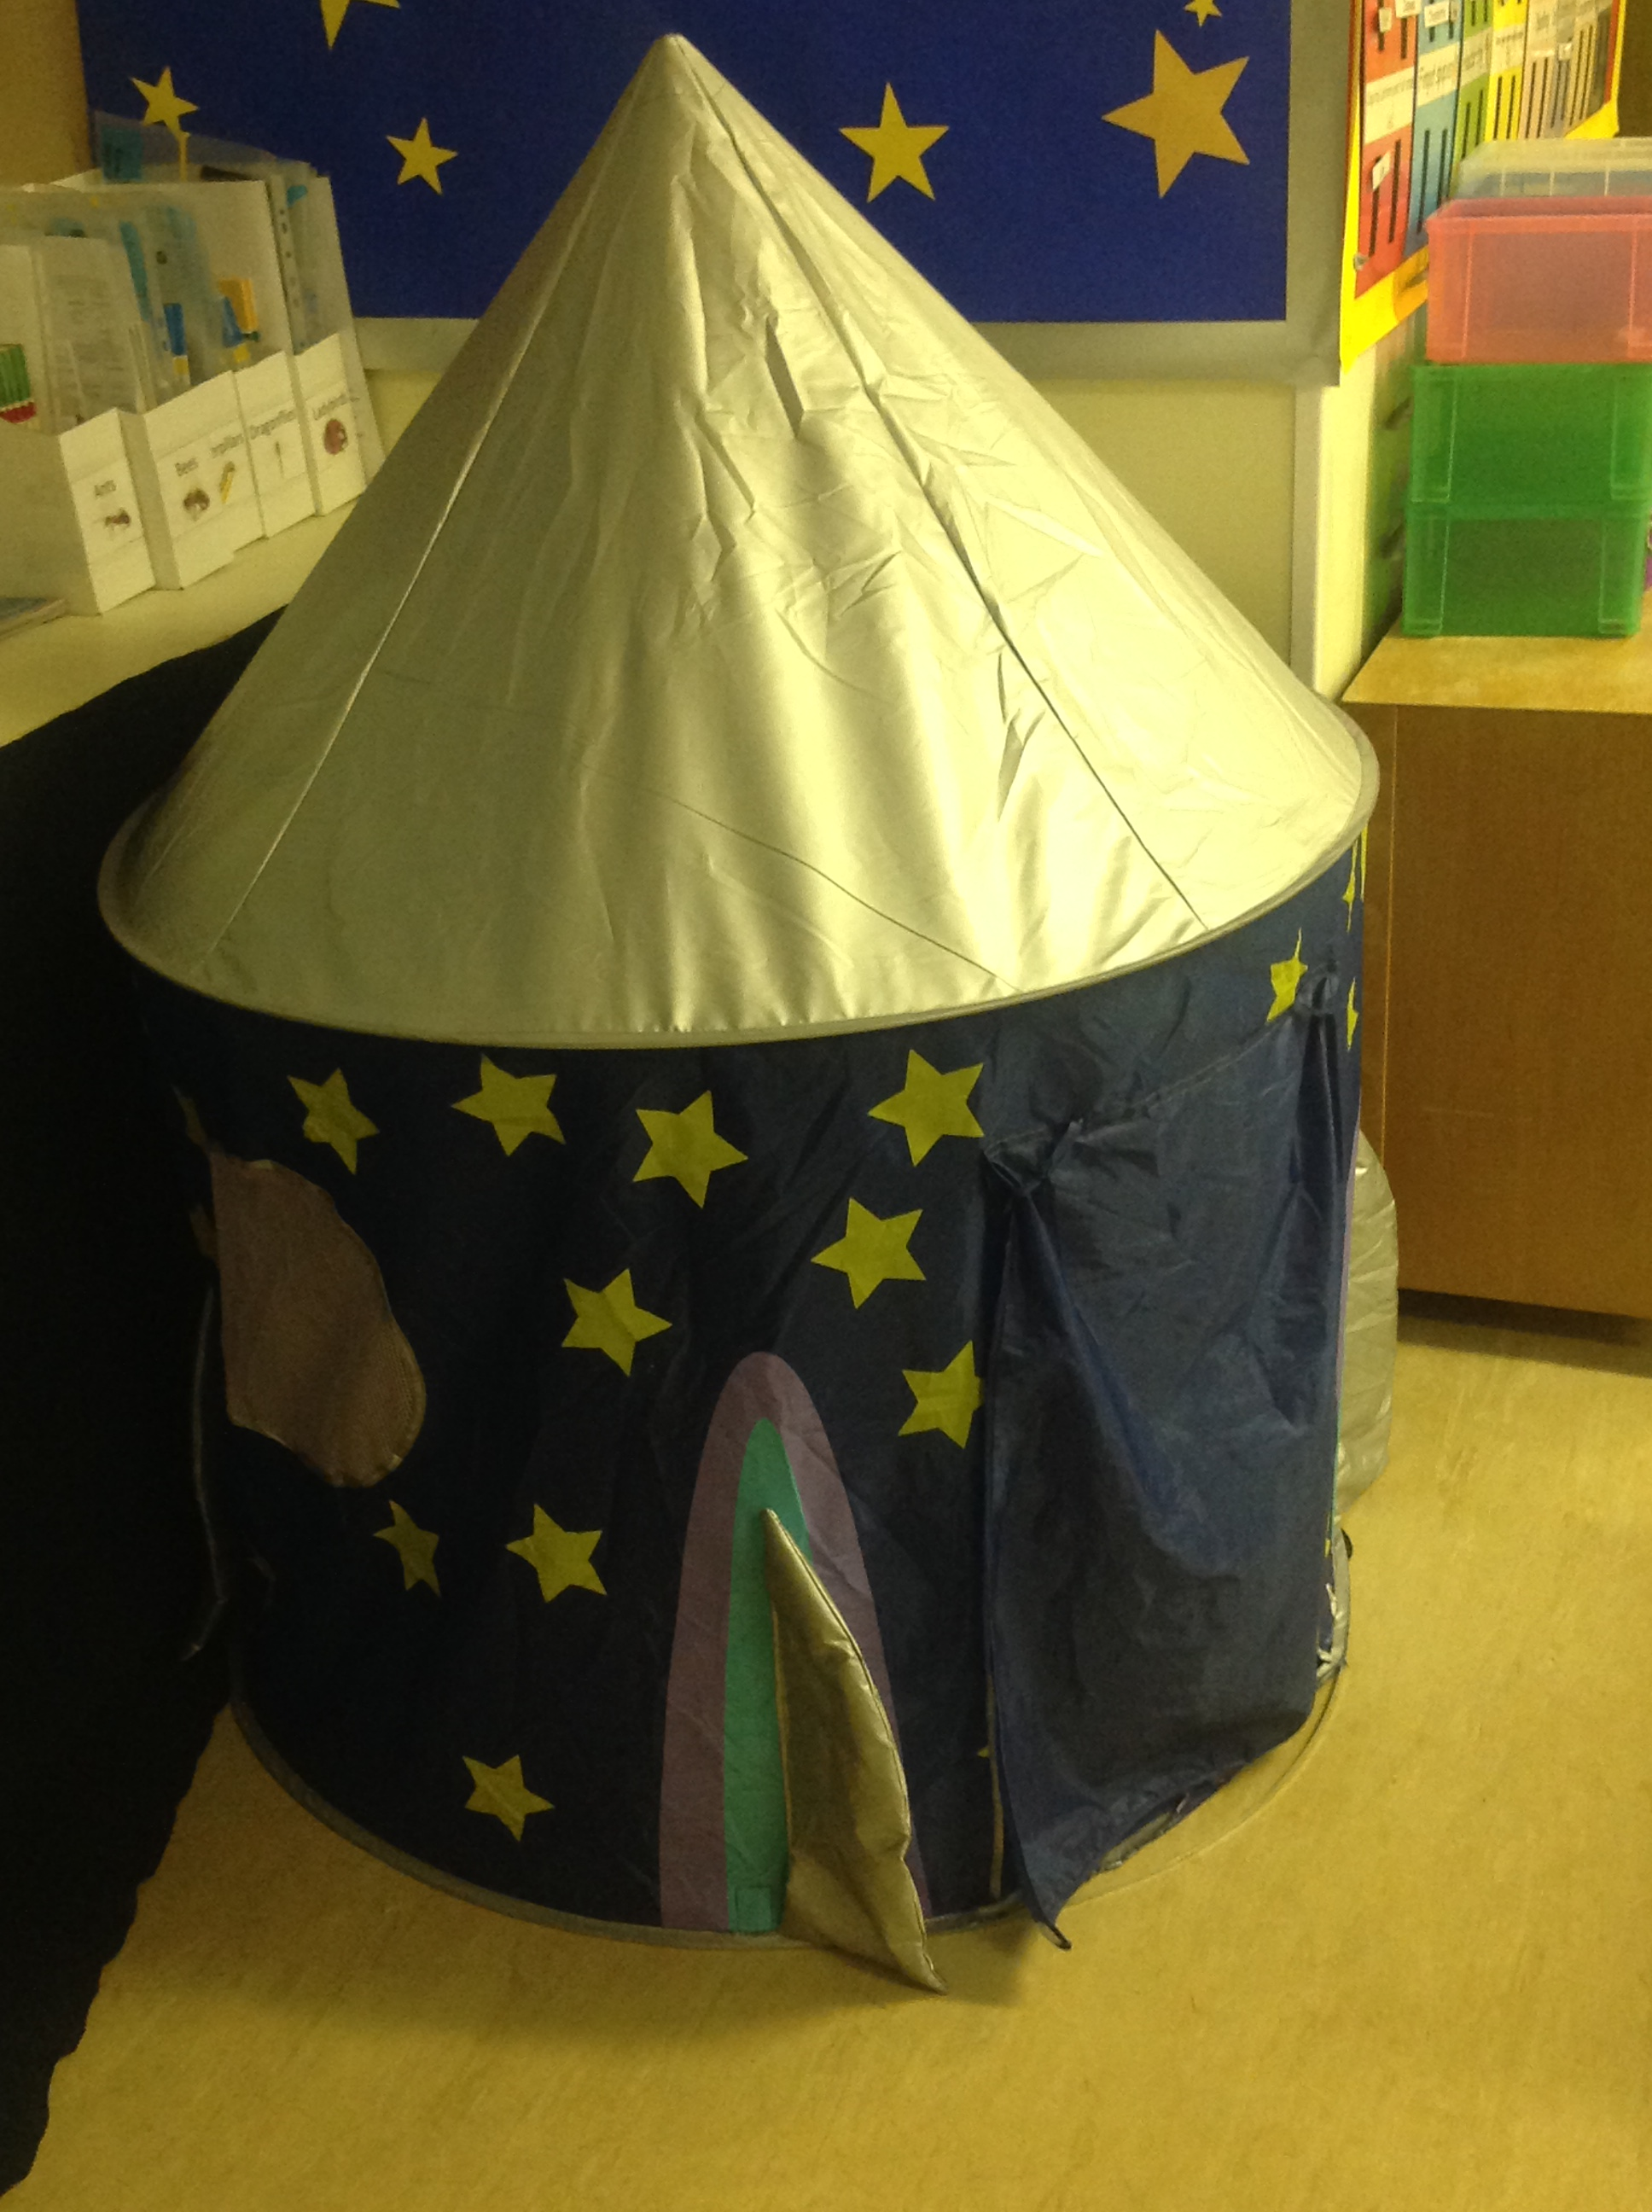 We love our reading tent